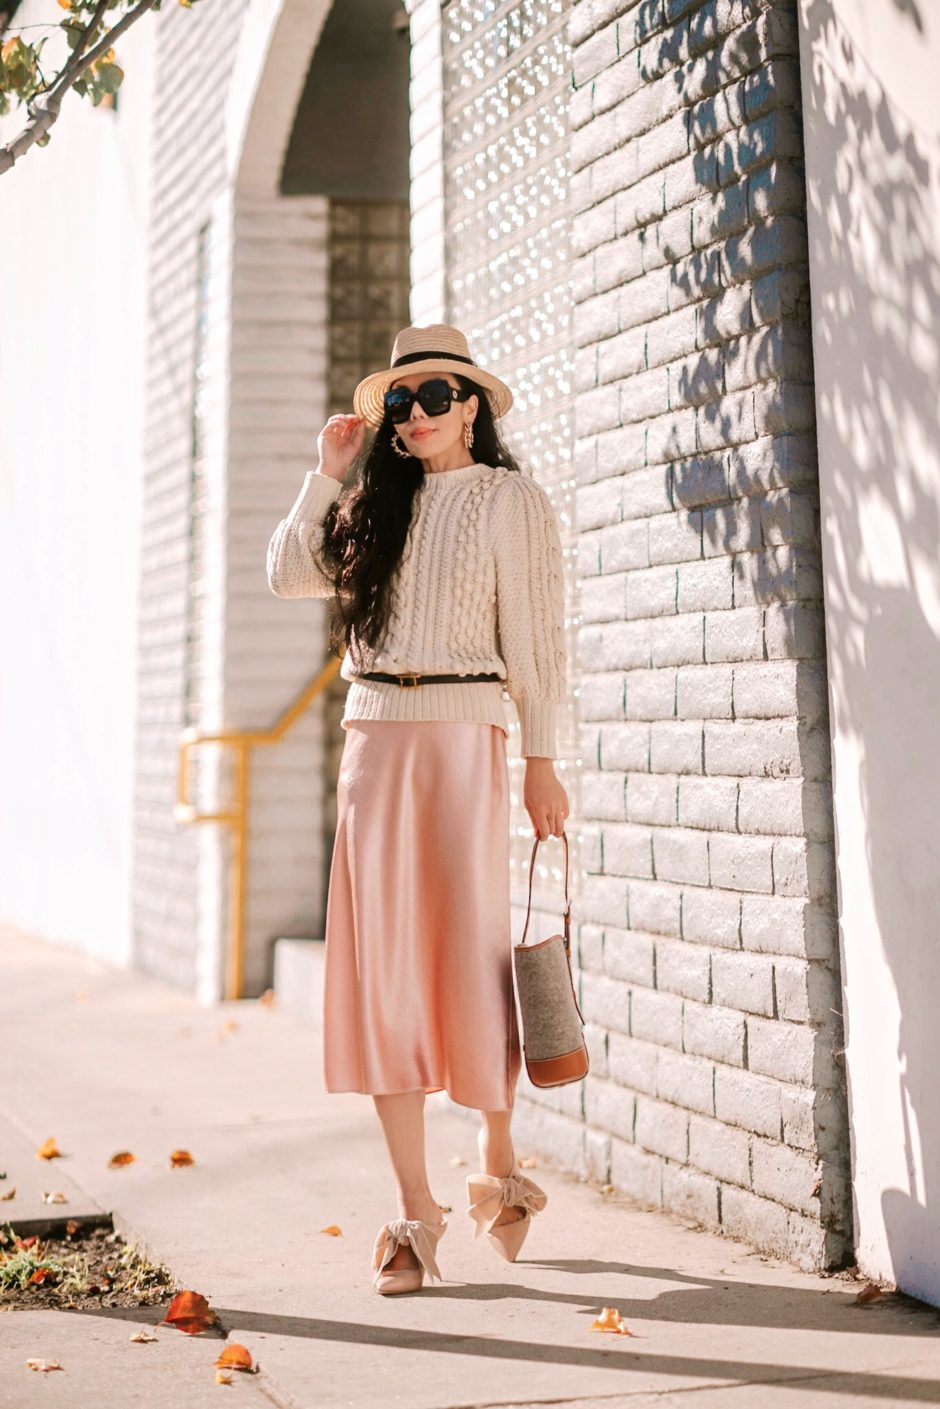 2019 Spring Trend Chunky Sweater Satin Skirt Hallie Daily